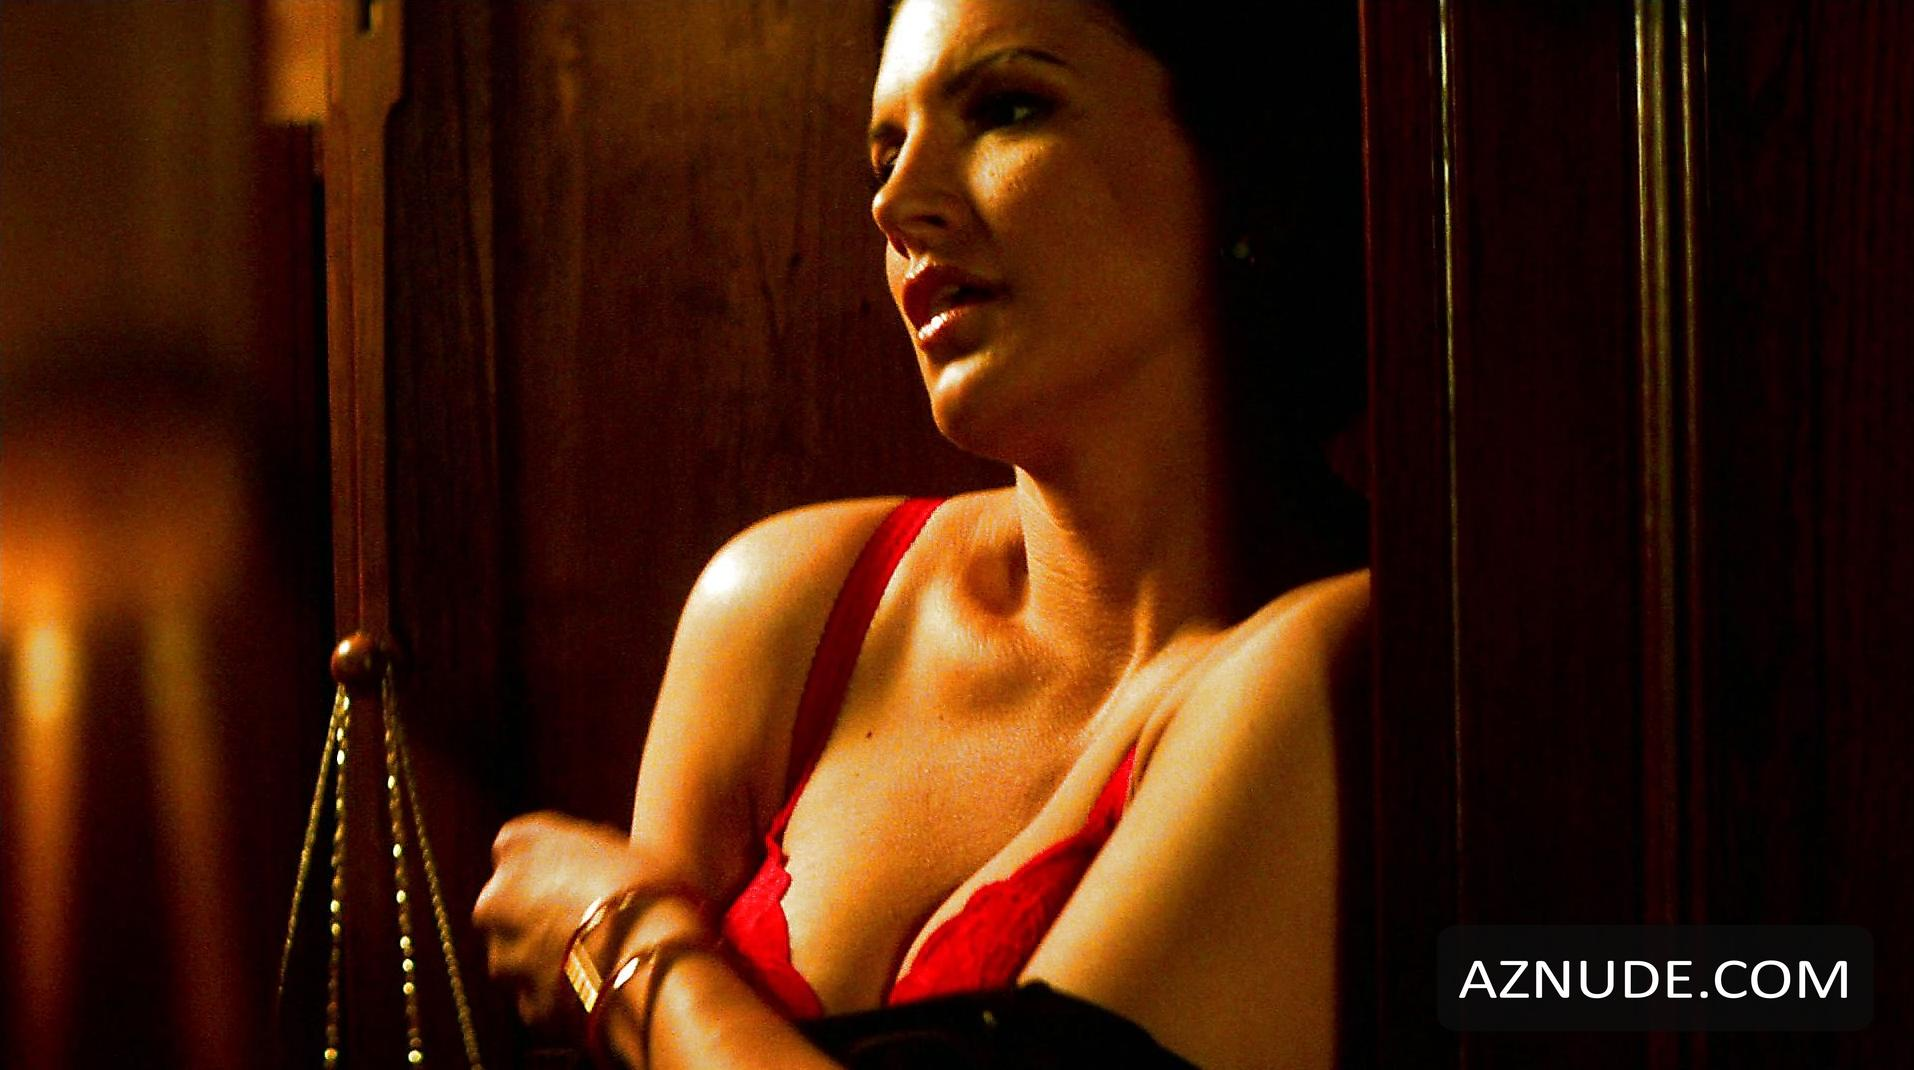 Watch Gina carano nude ans sexy video